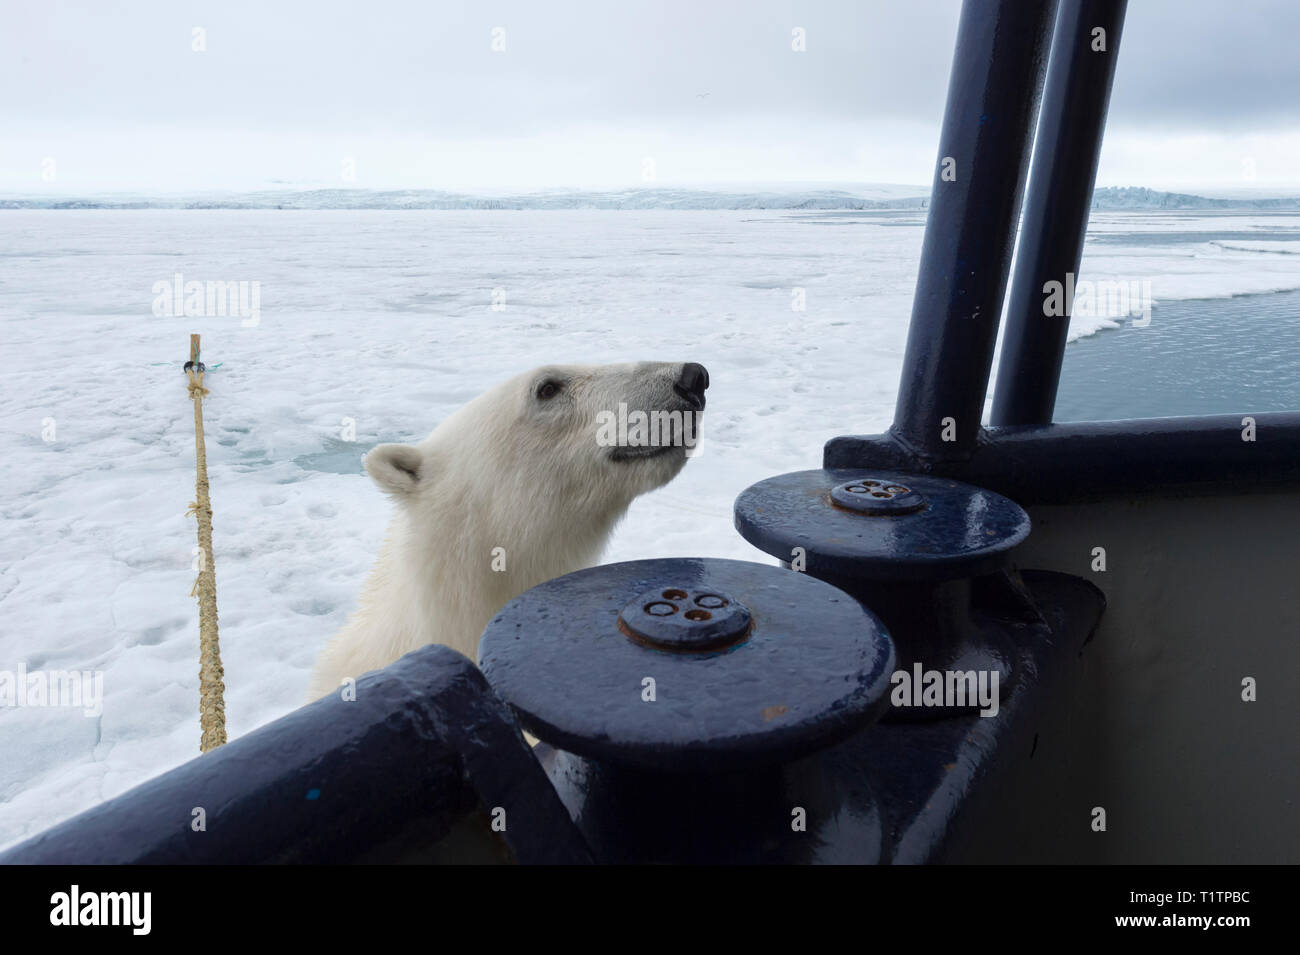 Polar Bear (Ursus maritimus) trying to climb expedition ship, Svalbard Archipelago, Norway - Stock Image